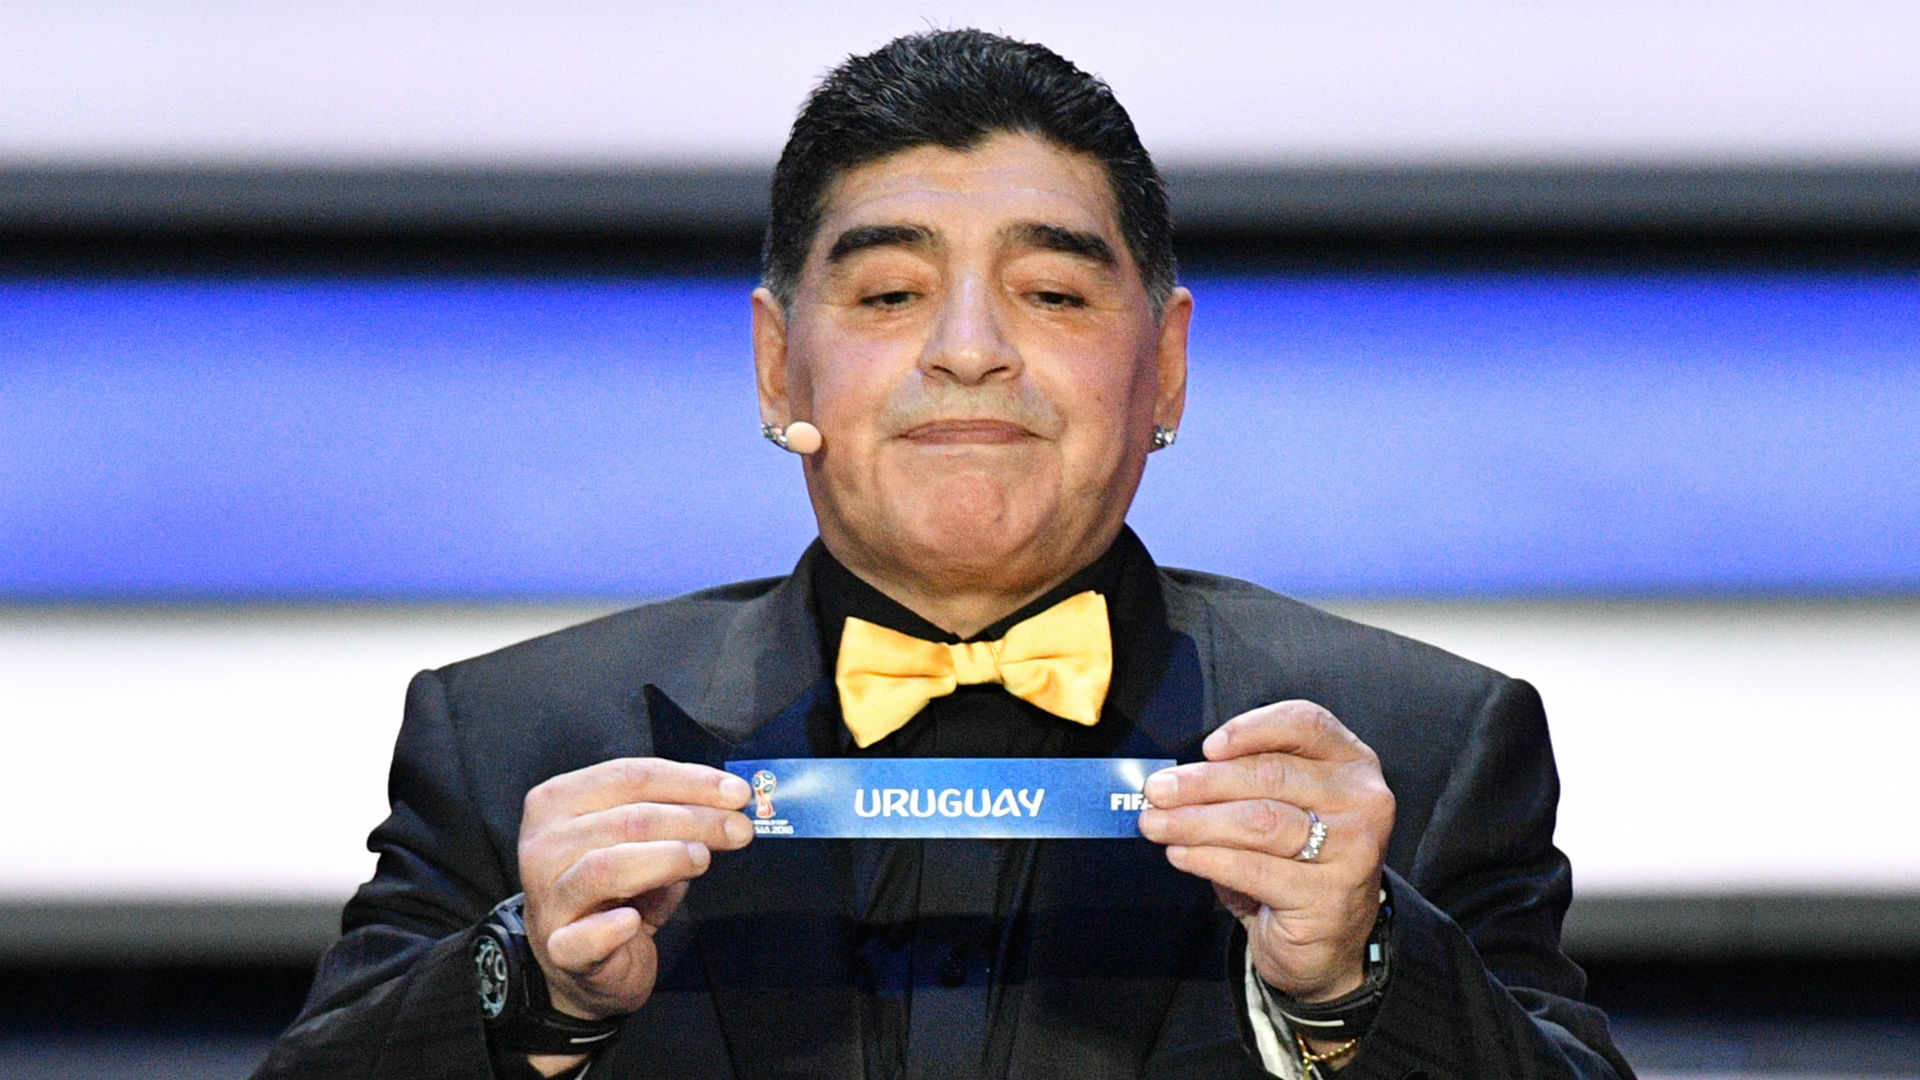 Diego Maradona World Cup 2018 draw